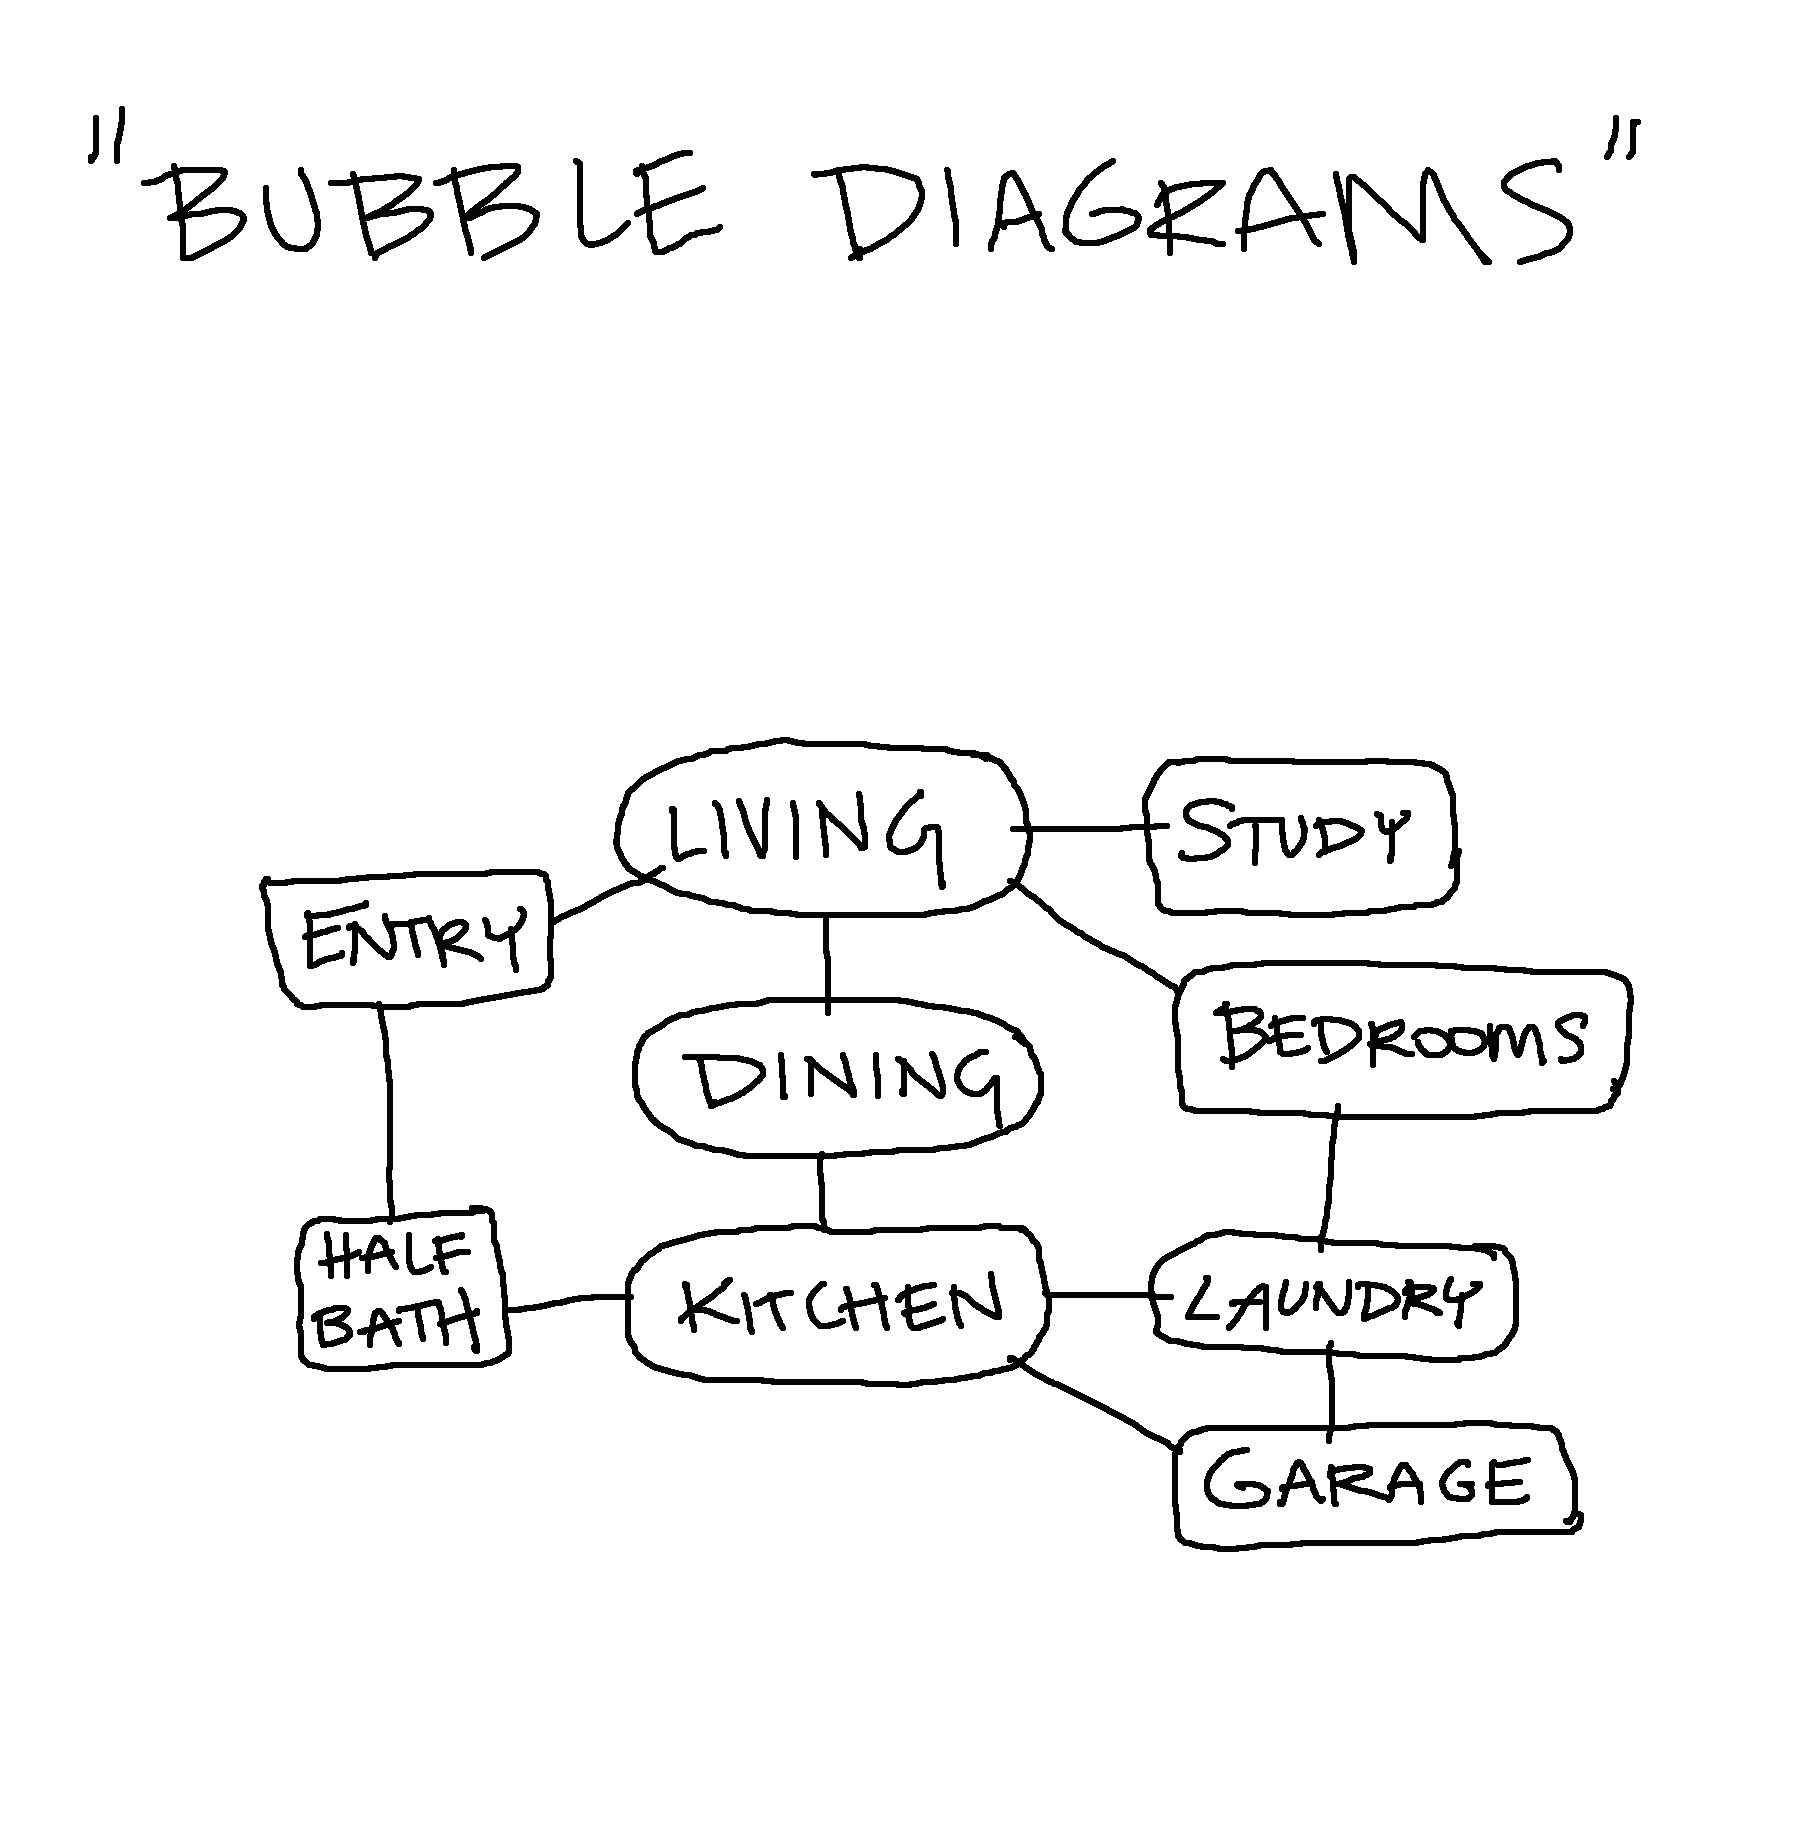 simple bubble diagram for writing crane xr700 wiring architecture and design programming 101 archability